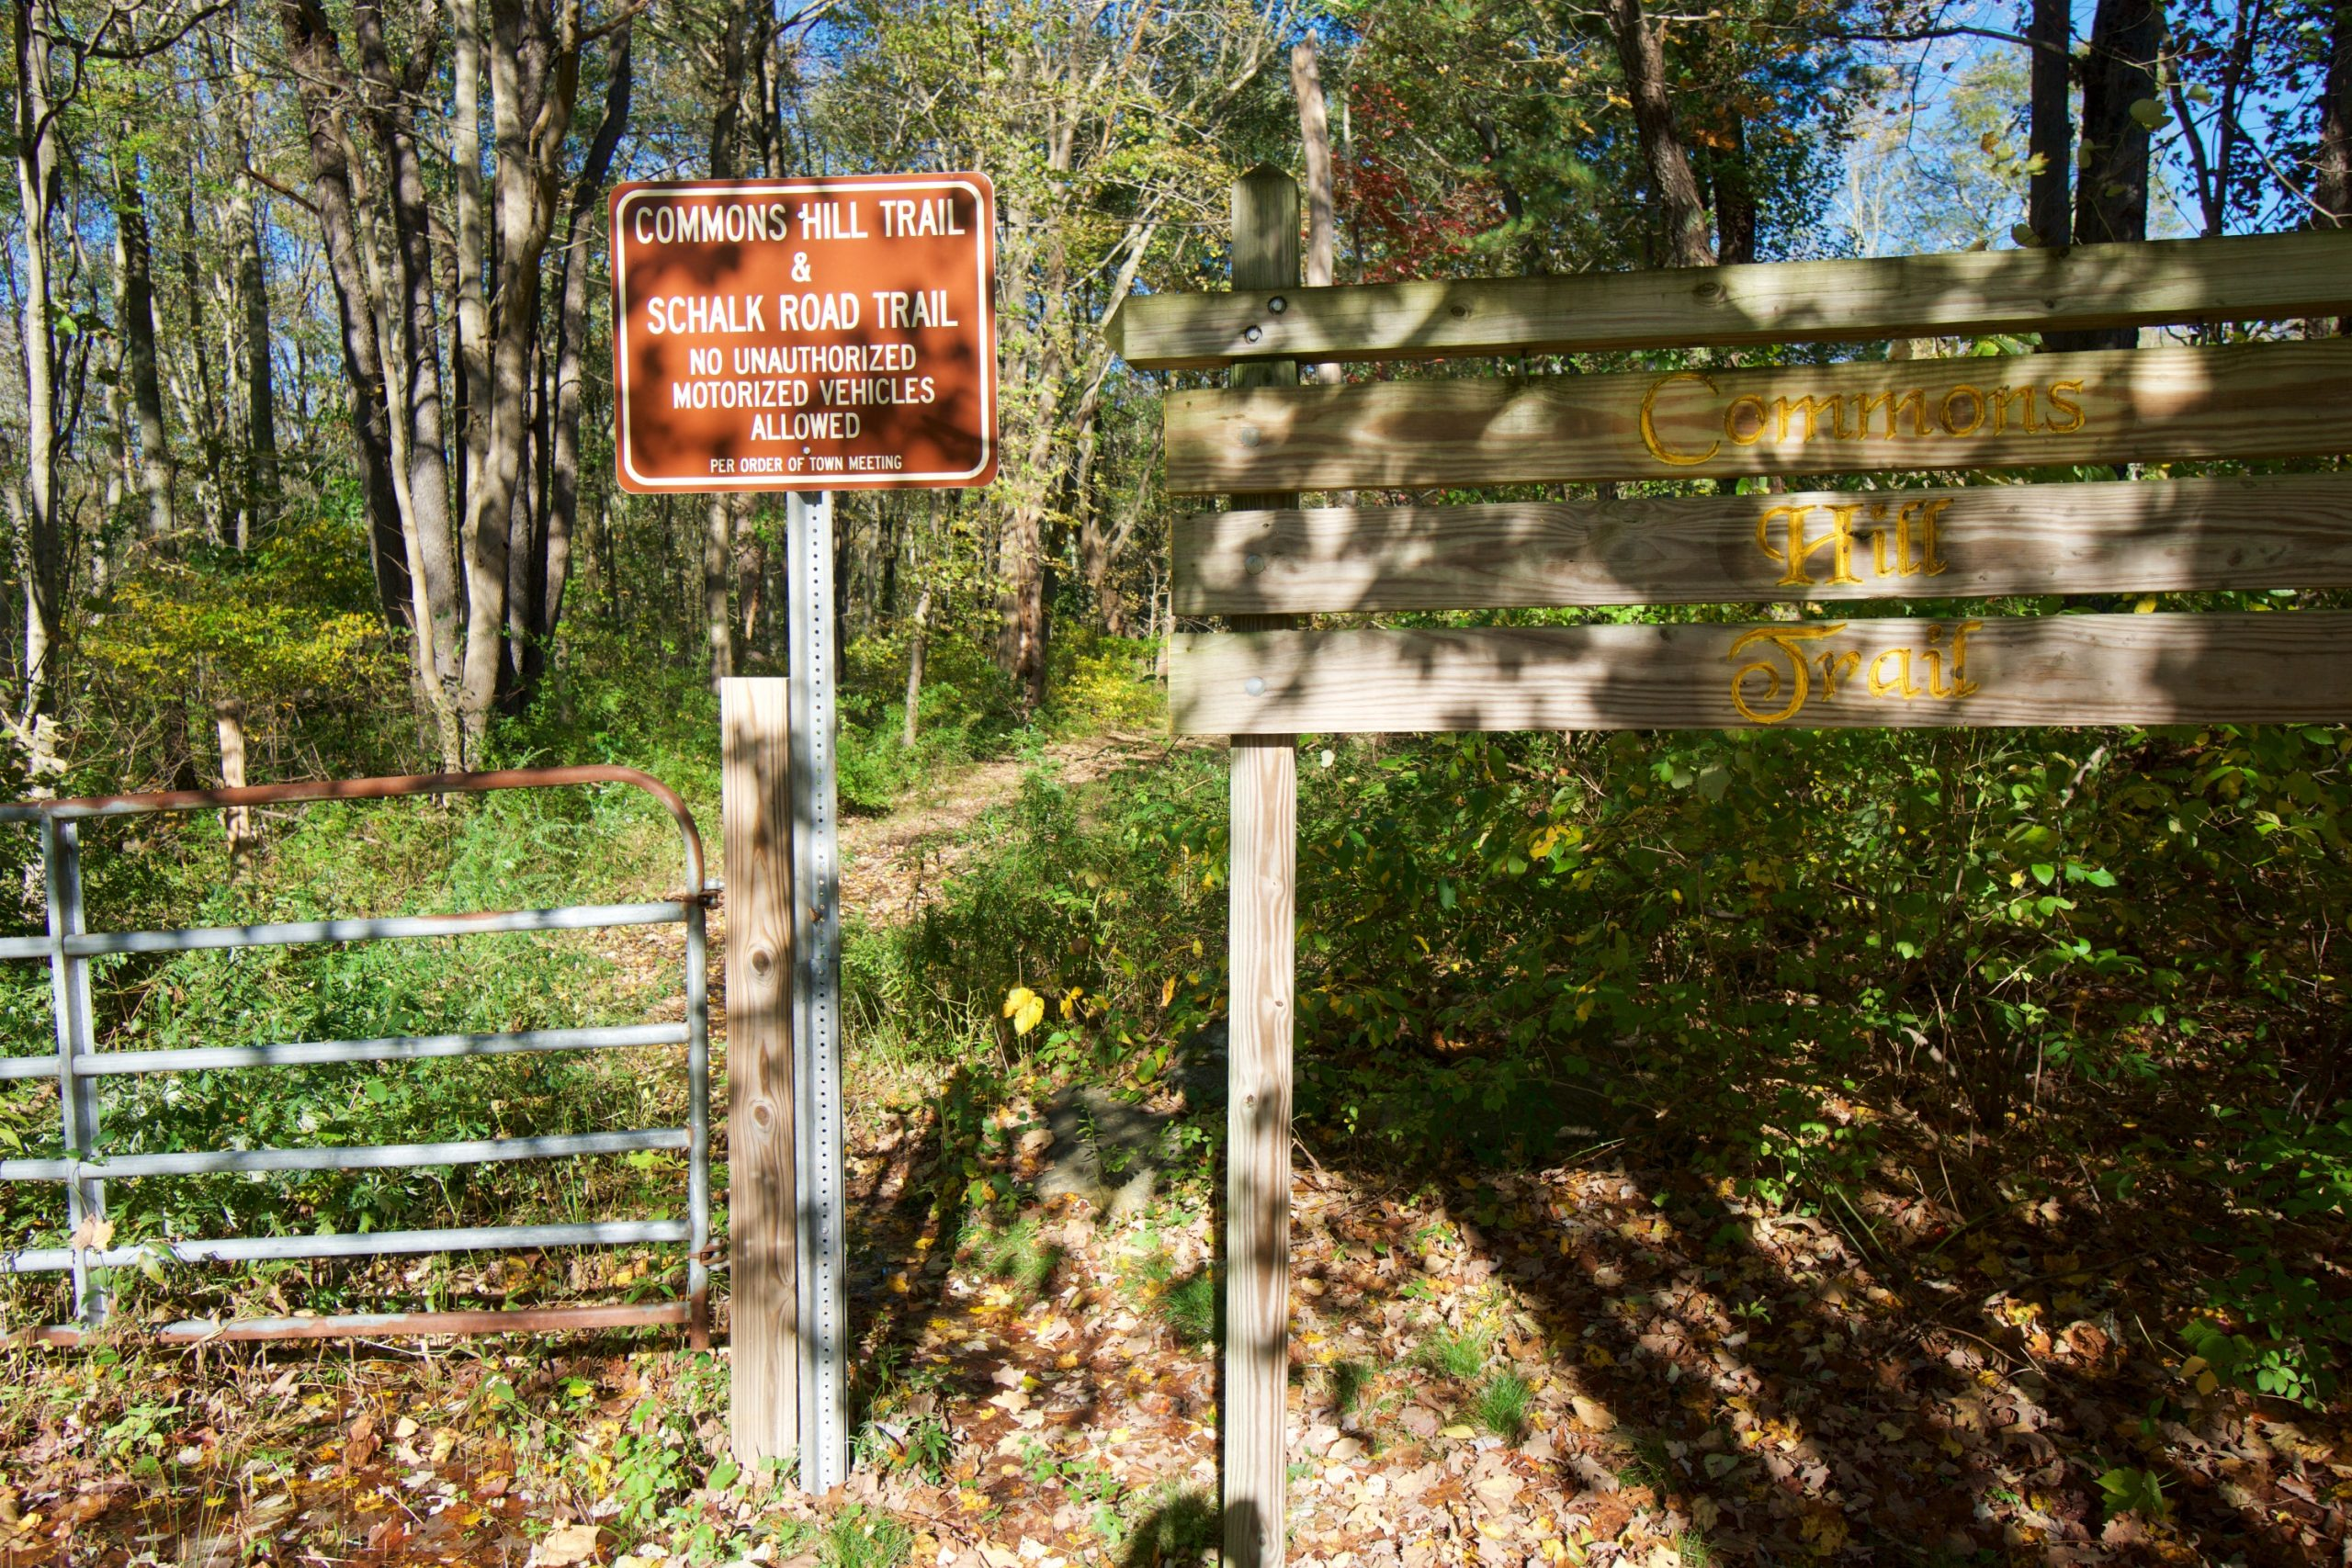 Commons Hill Trailhead